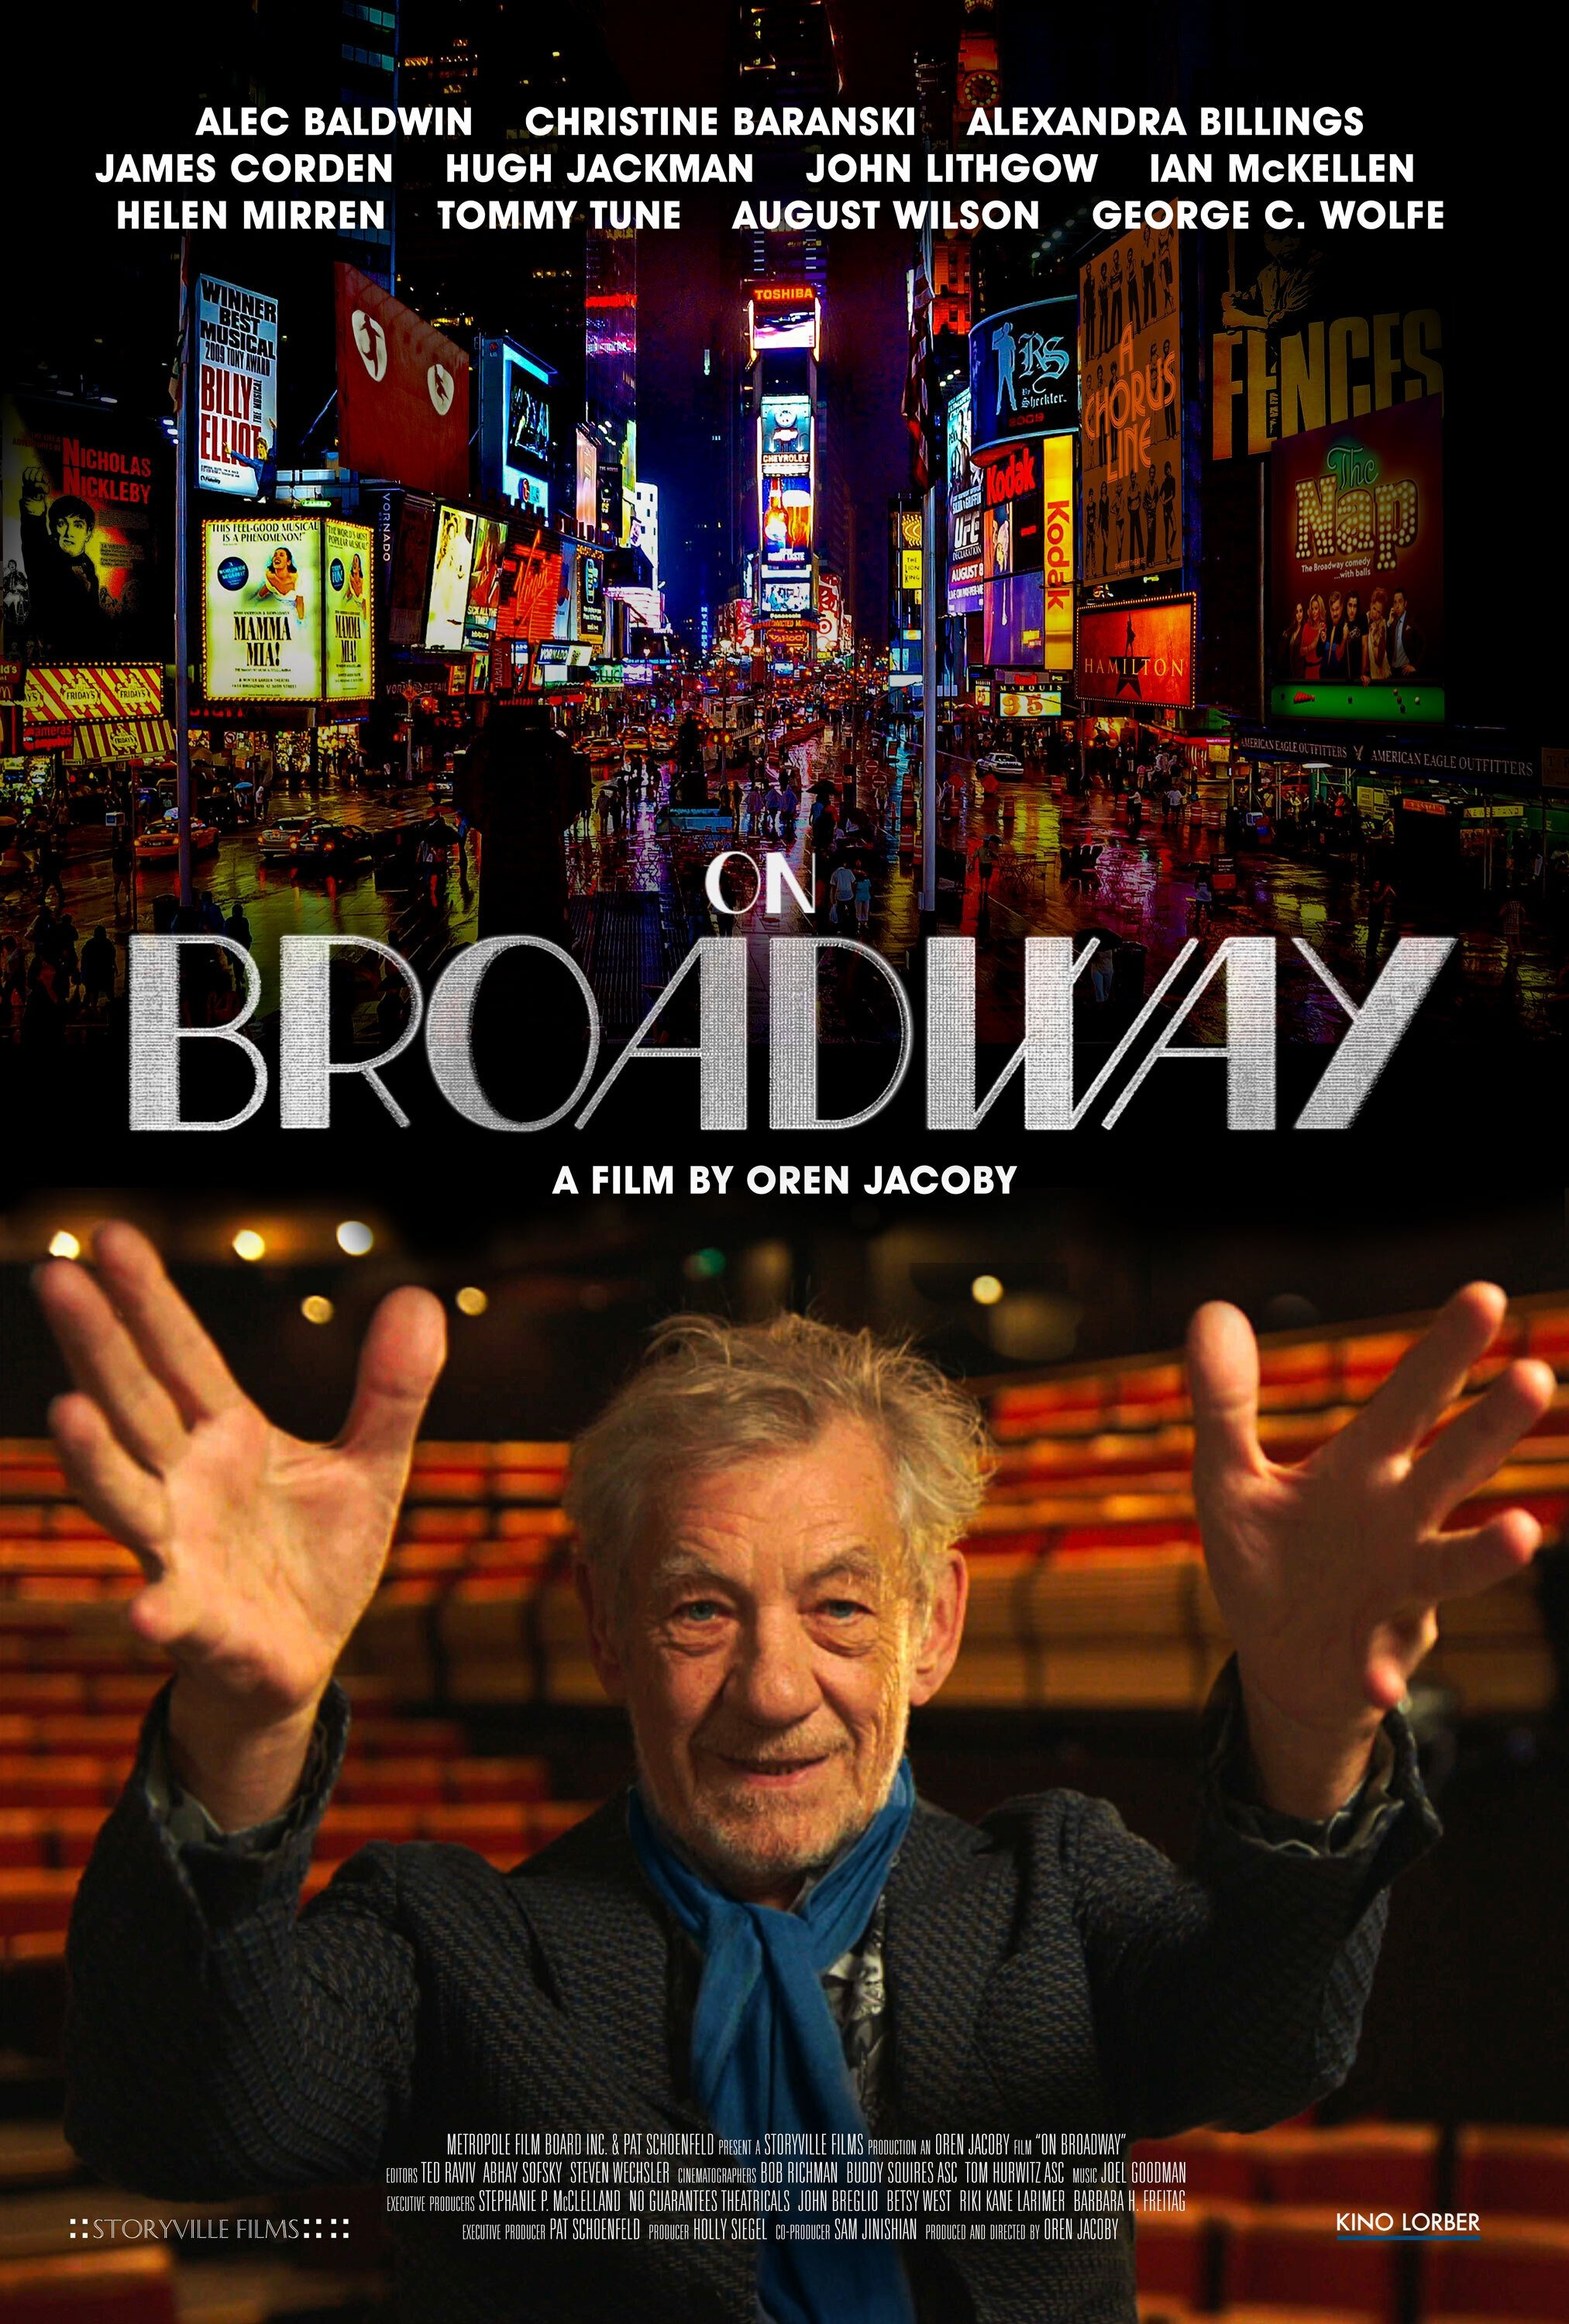 Actor Ian McKellen can be seen inpromotional art for the documentary 'On Broadway,' a new documentary celebrating the Great White Way. (Kino Lorber via AP)